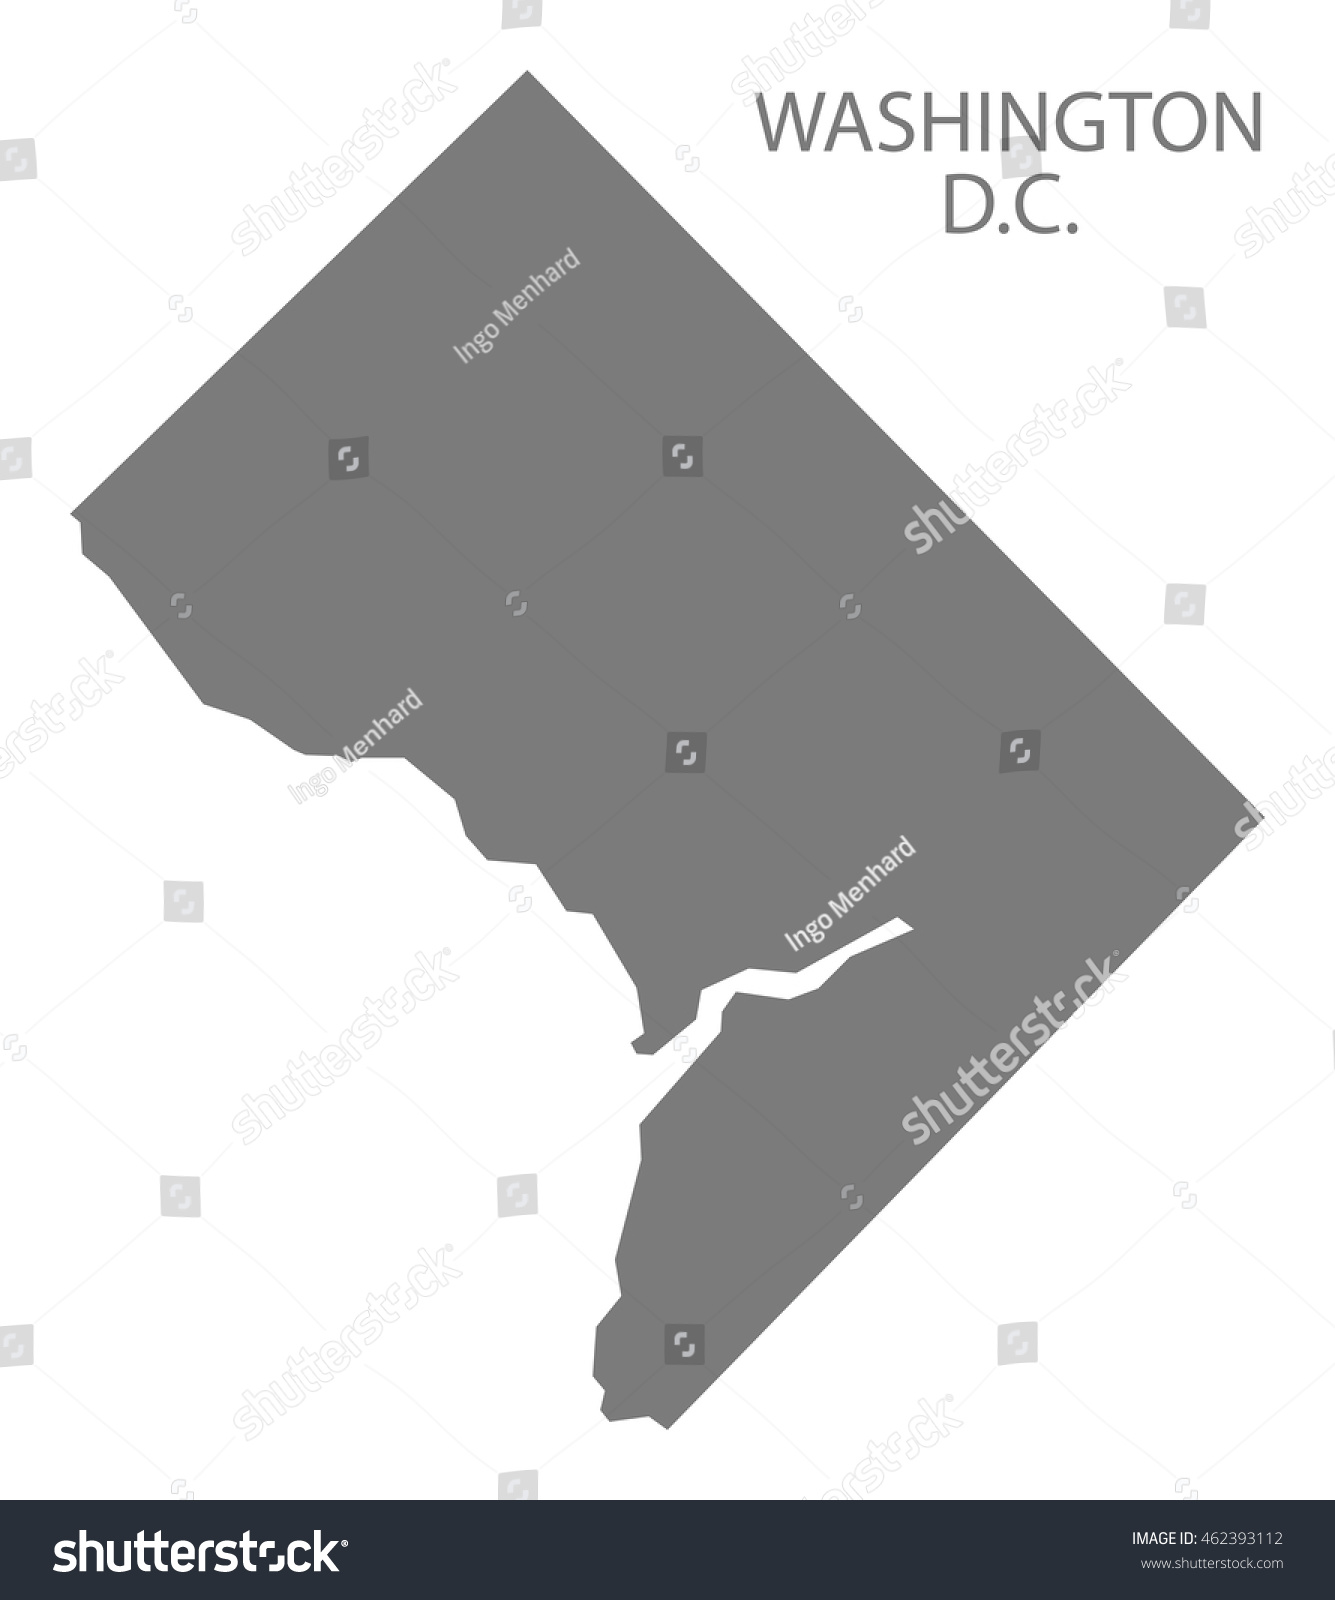 Washington Dc Usa Map Grey Stock Vector Shutterstock - Washington dc us map